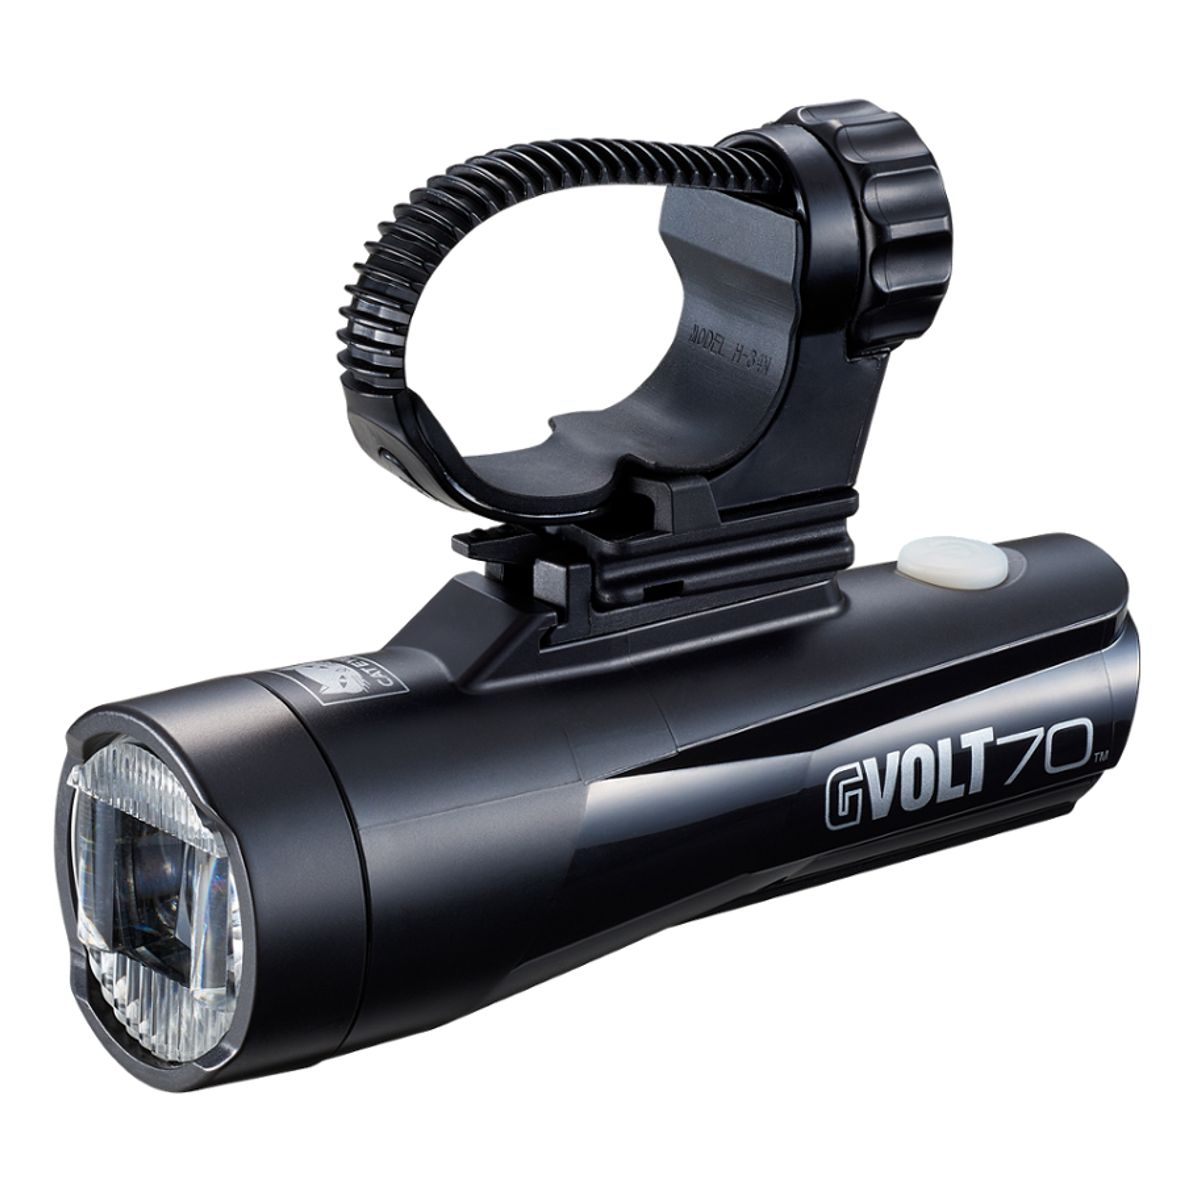 Cateye GVolt70 battery-powered front light | Hjelmlygter